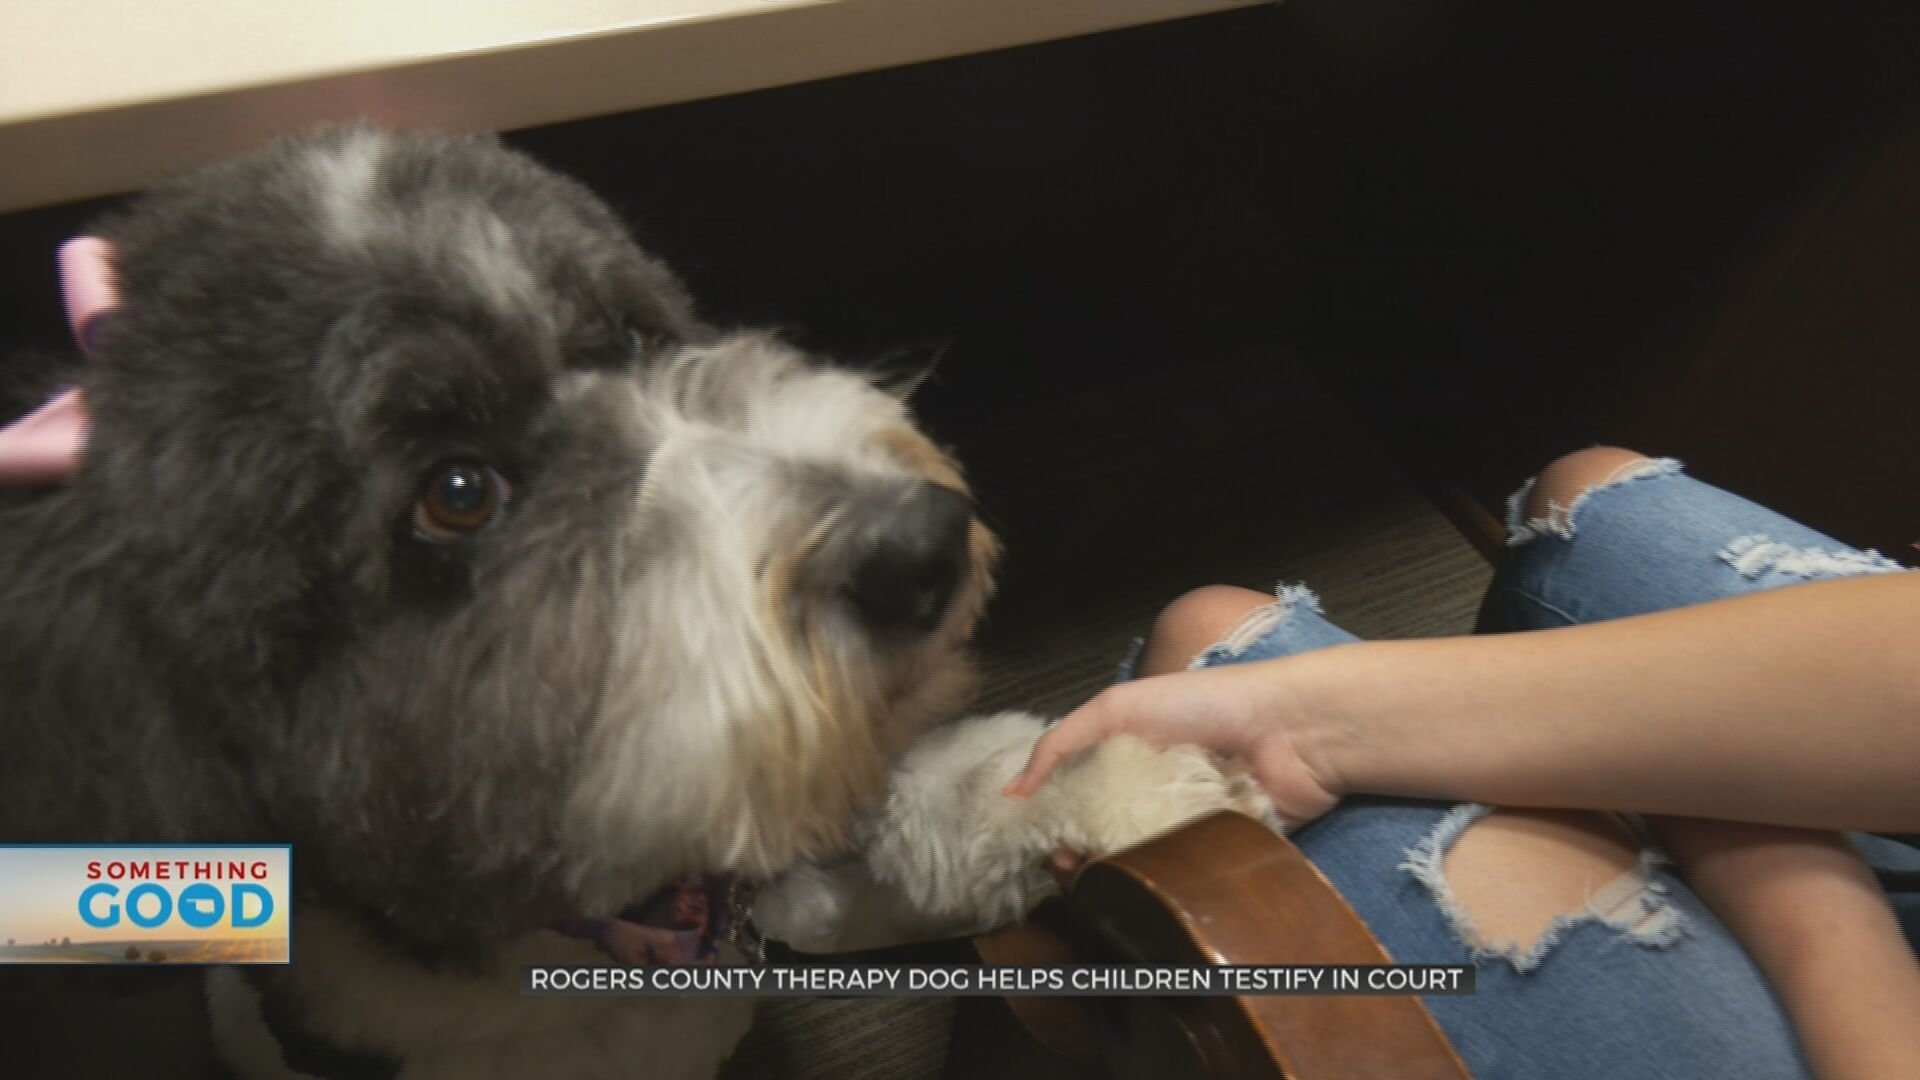 Rogers County Therapy Dog Comforts Children Testifying In Court